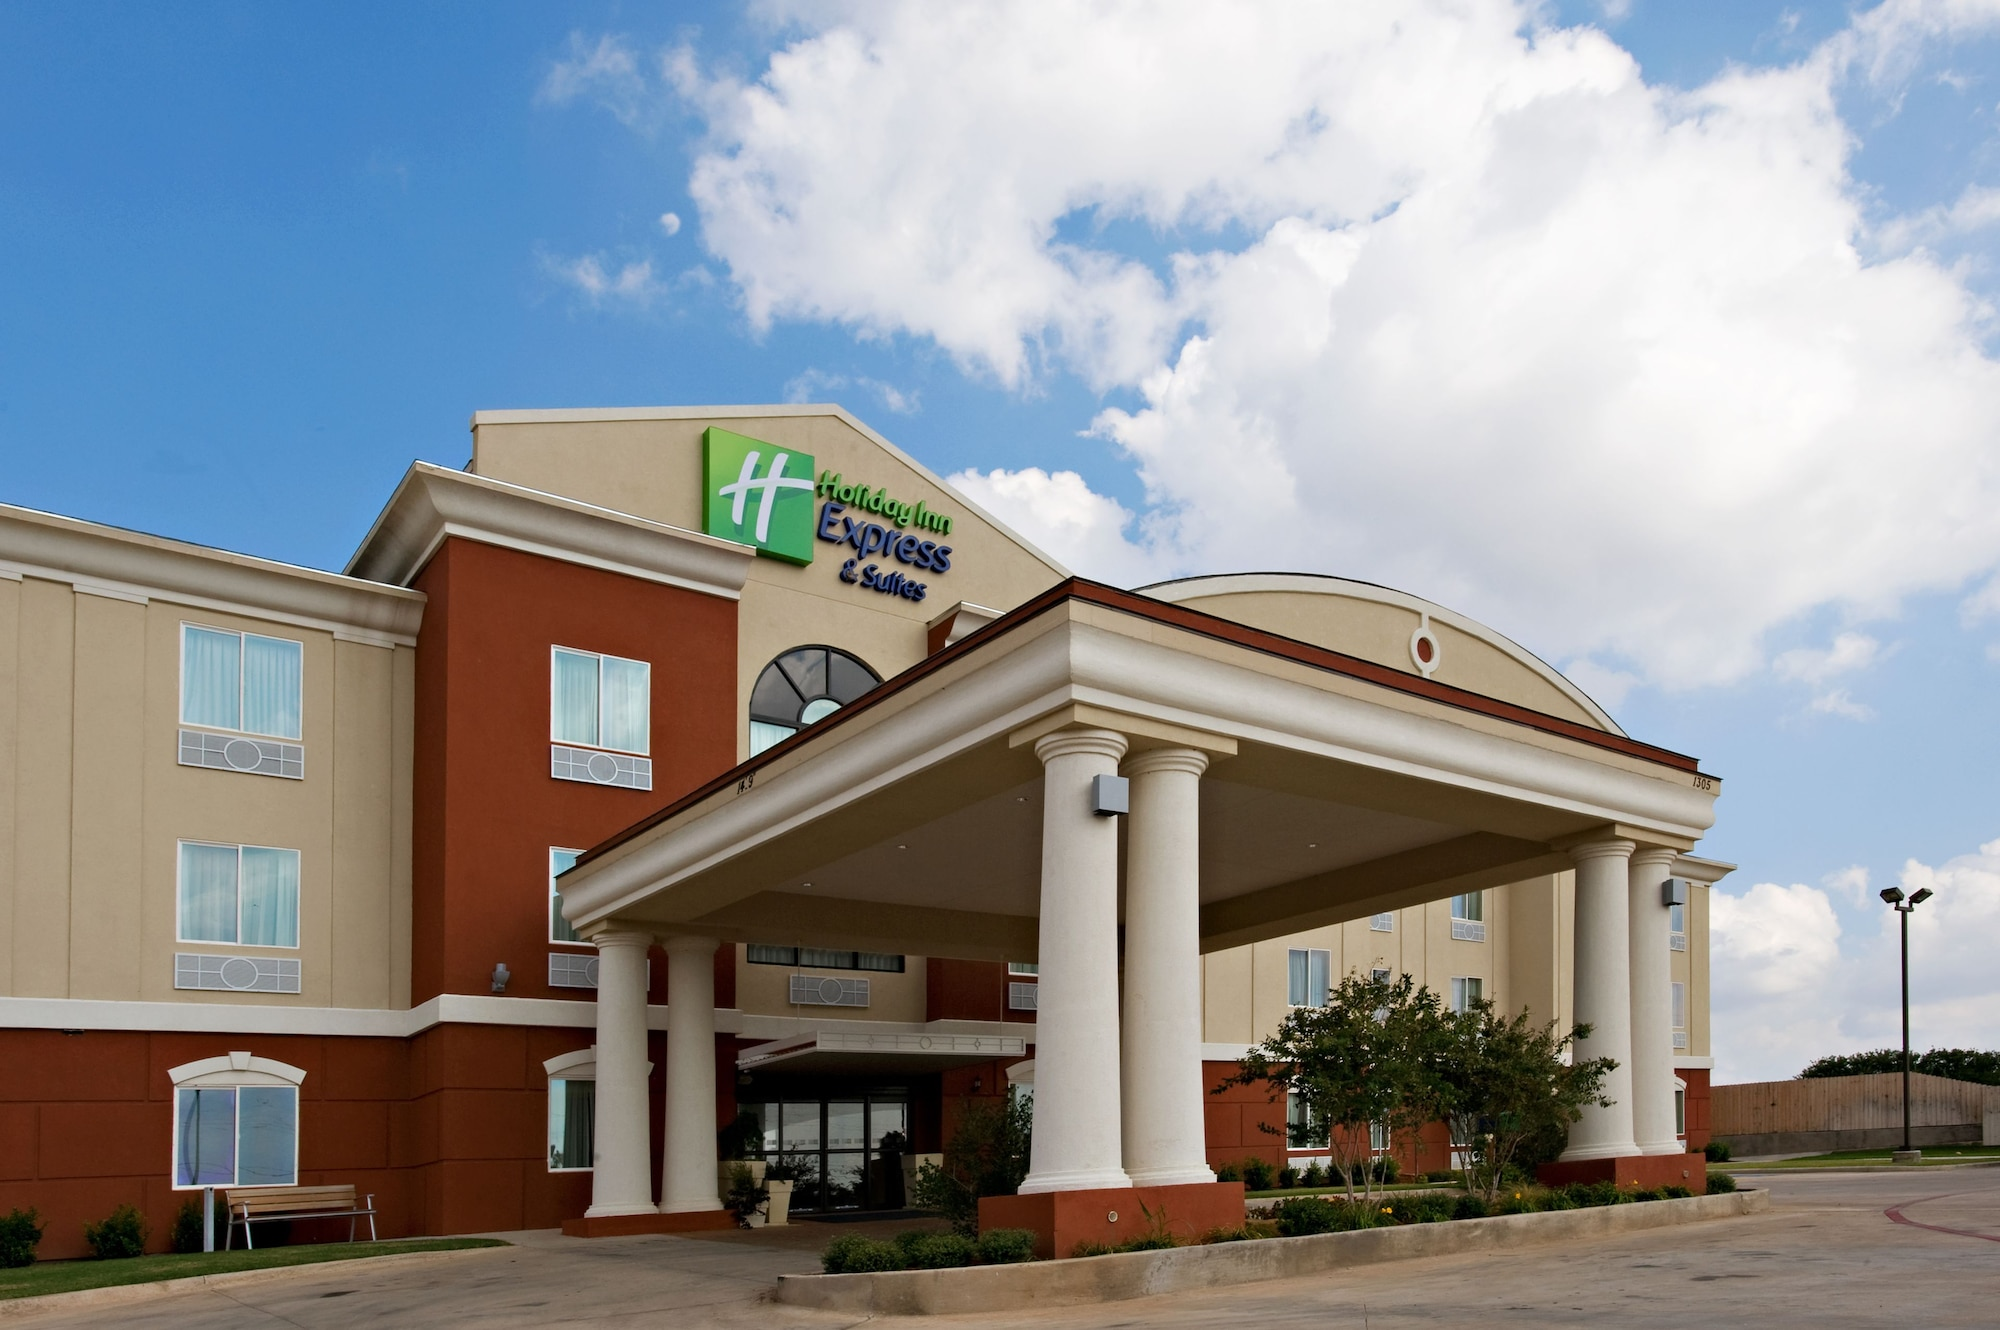 Holiday Inn Express &Suites Snyder, Scurry